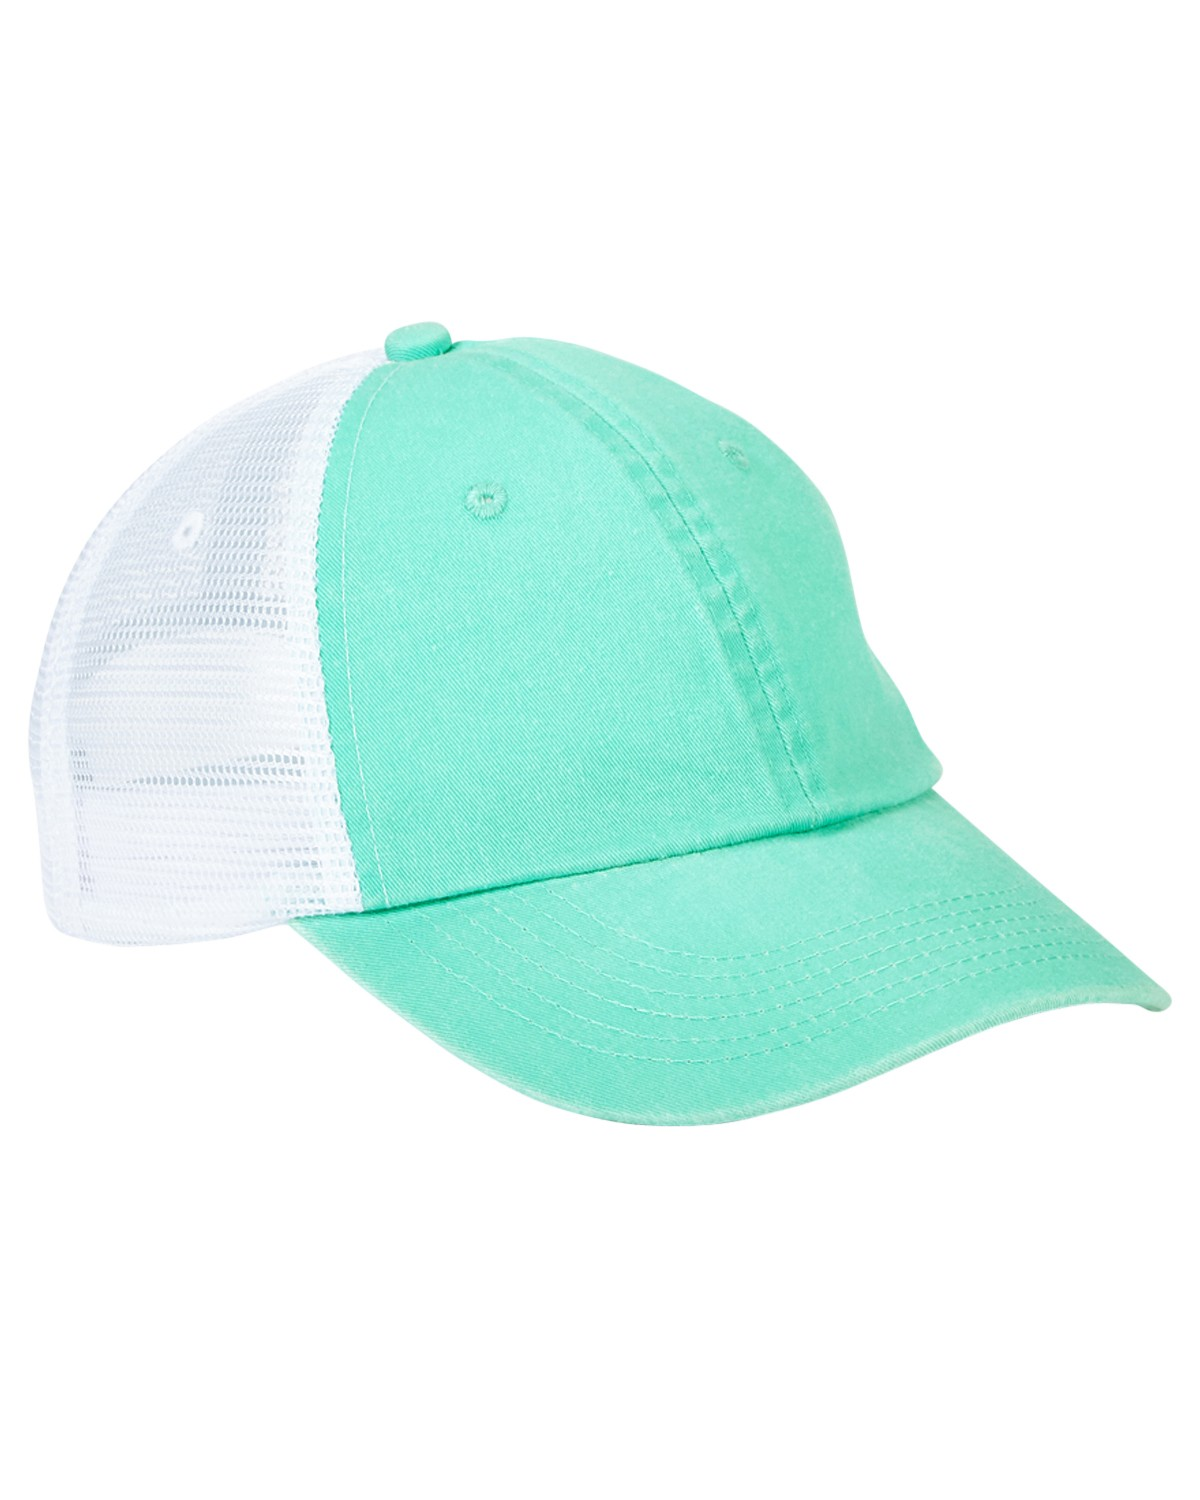 VB101 Adams SEAFOAM